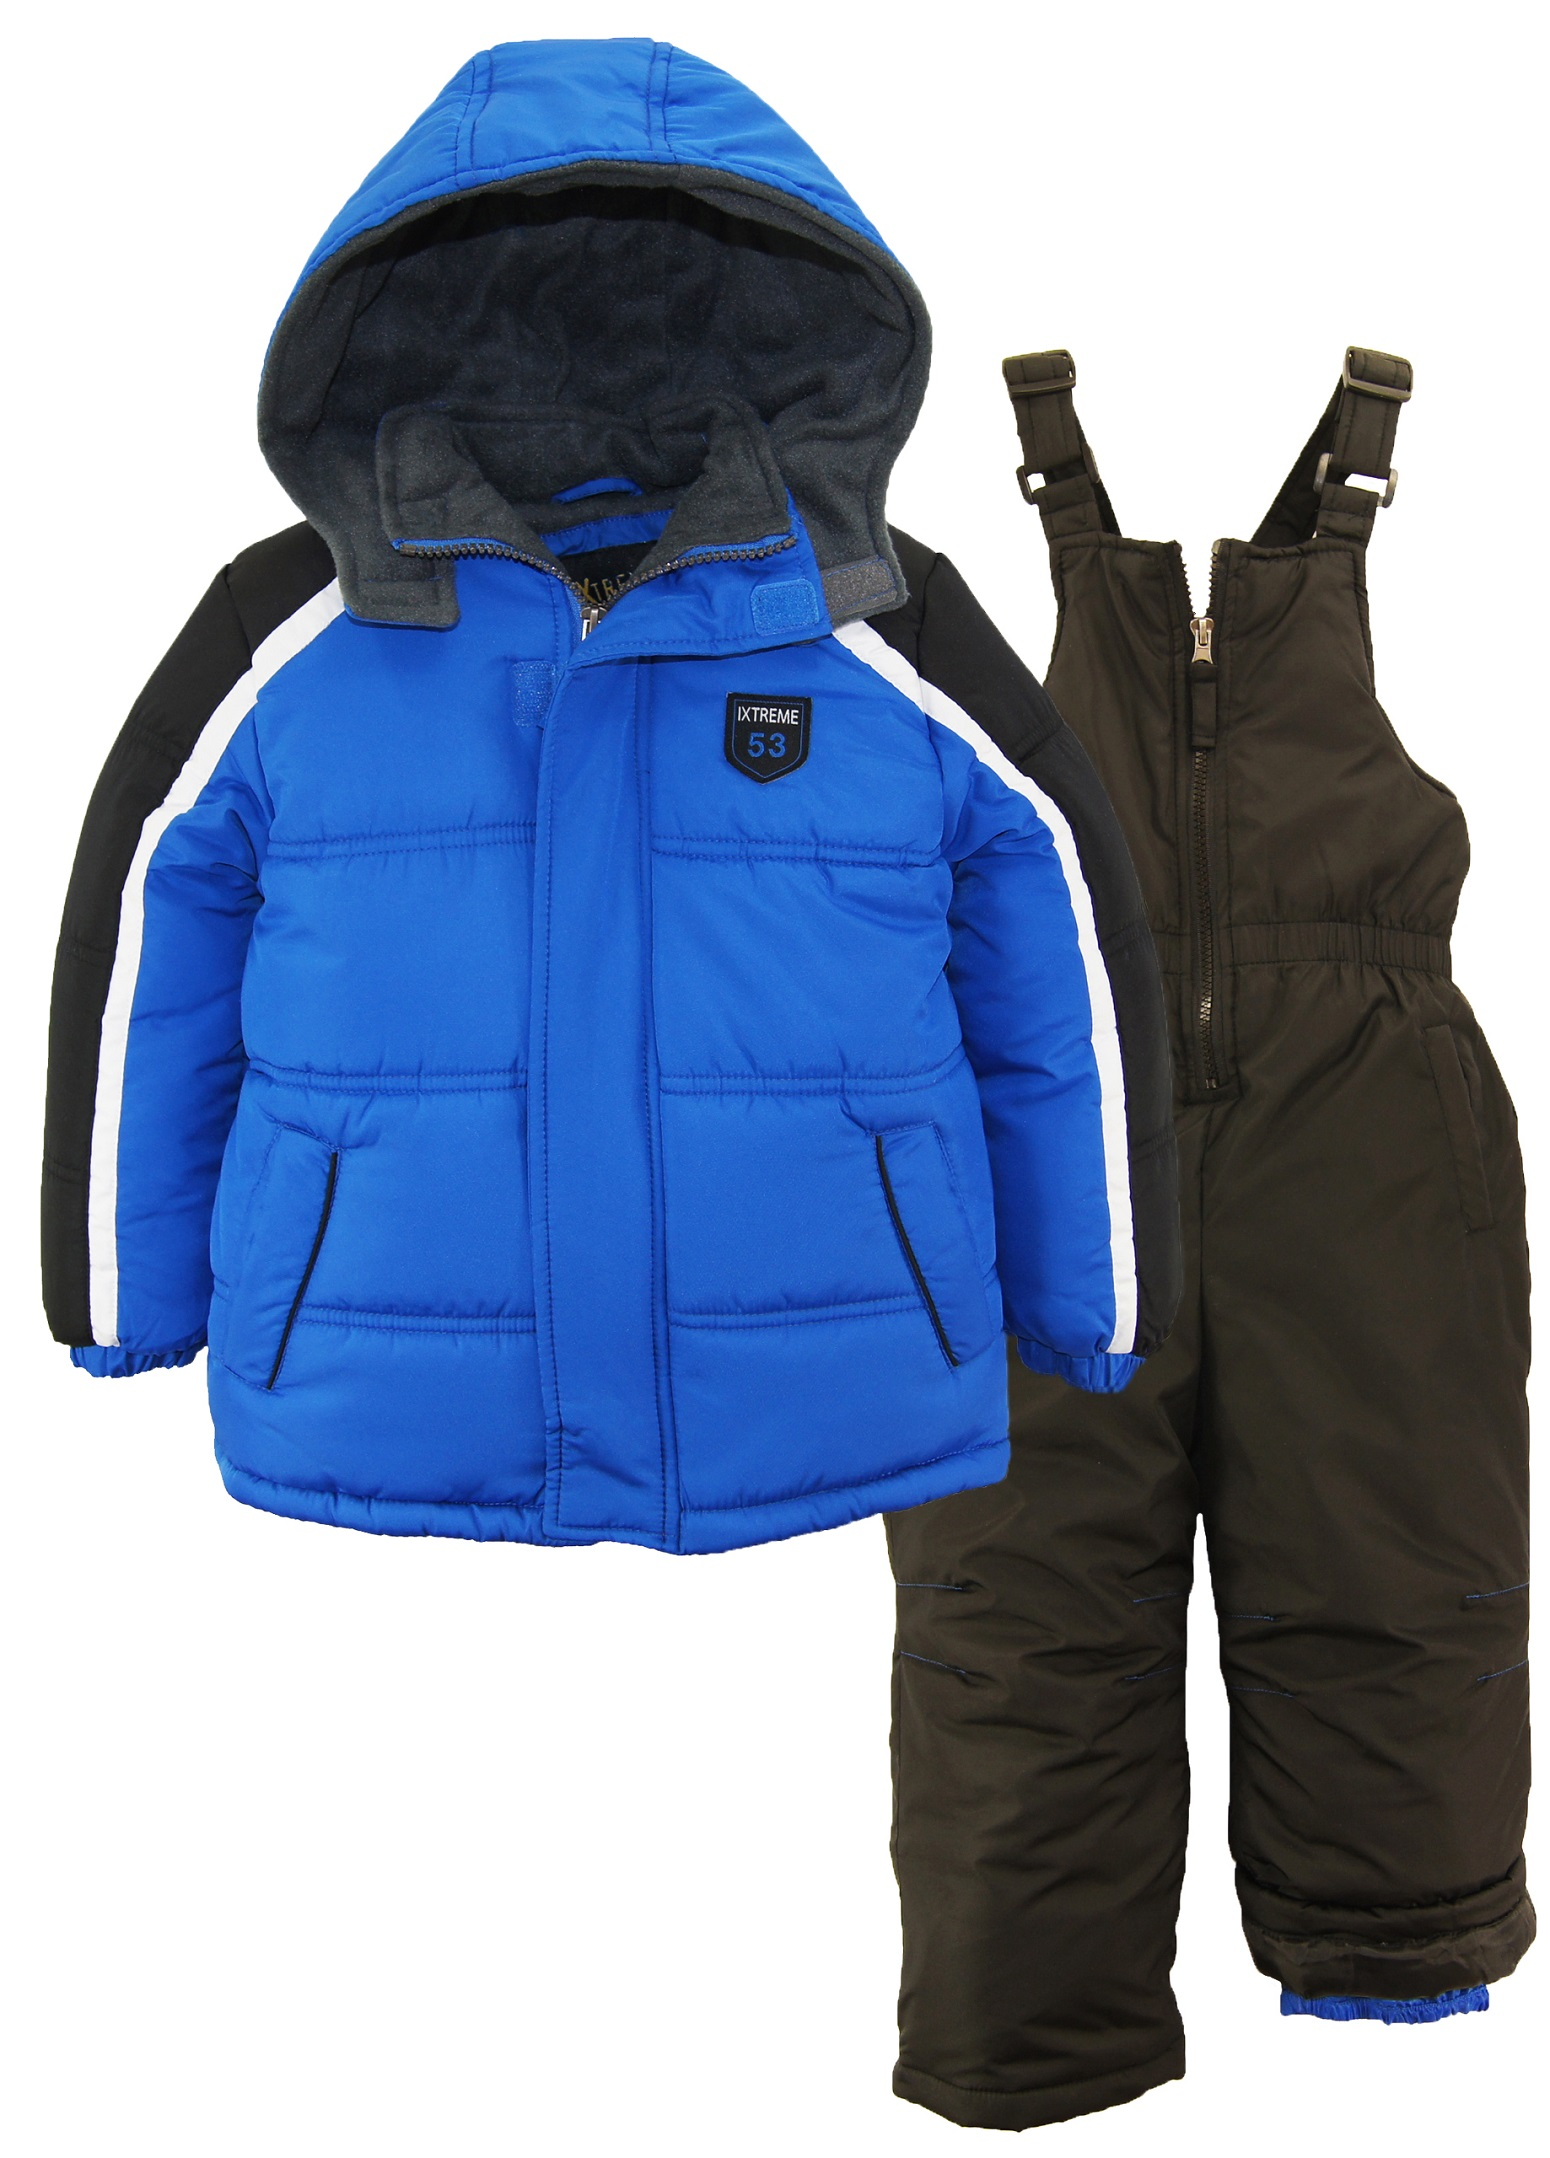 iXtreme Boys Colorblock Expedition Snowsuit Puffer Winter Jacket Ski Bib